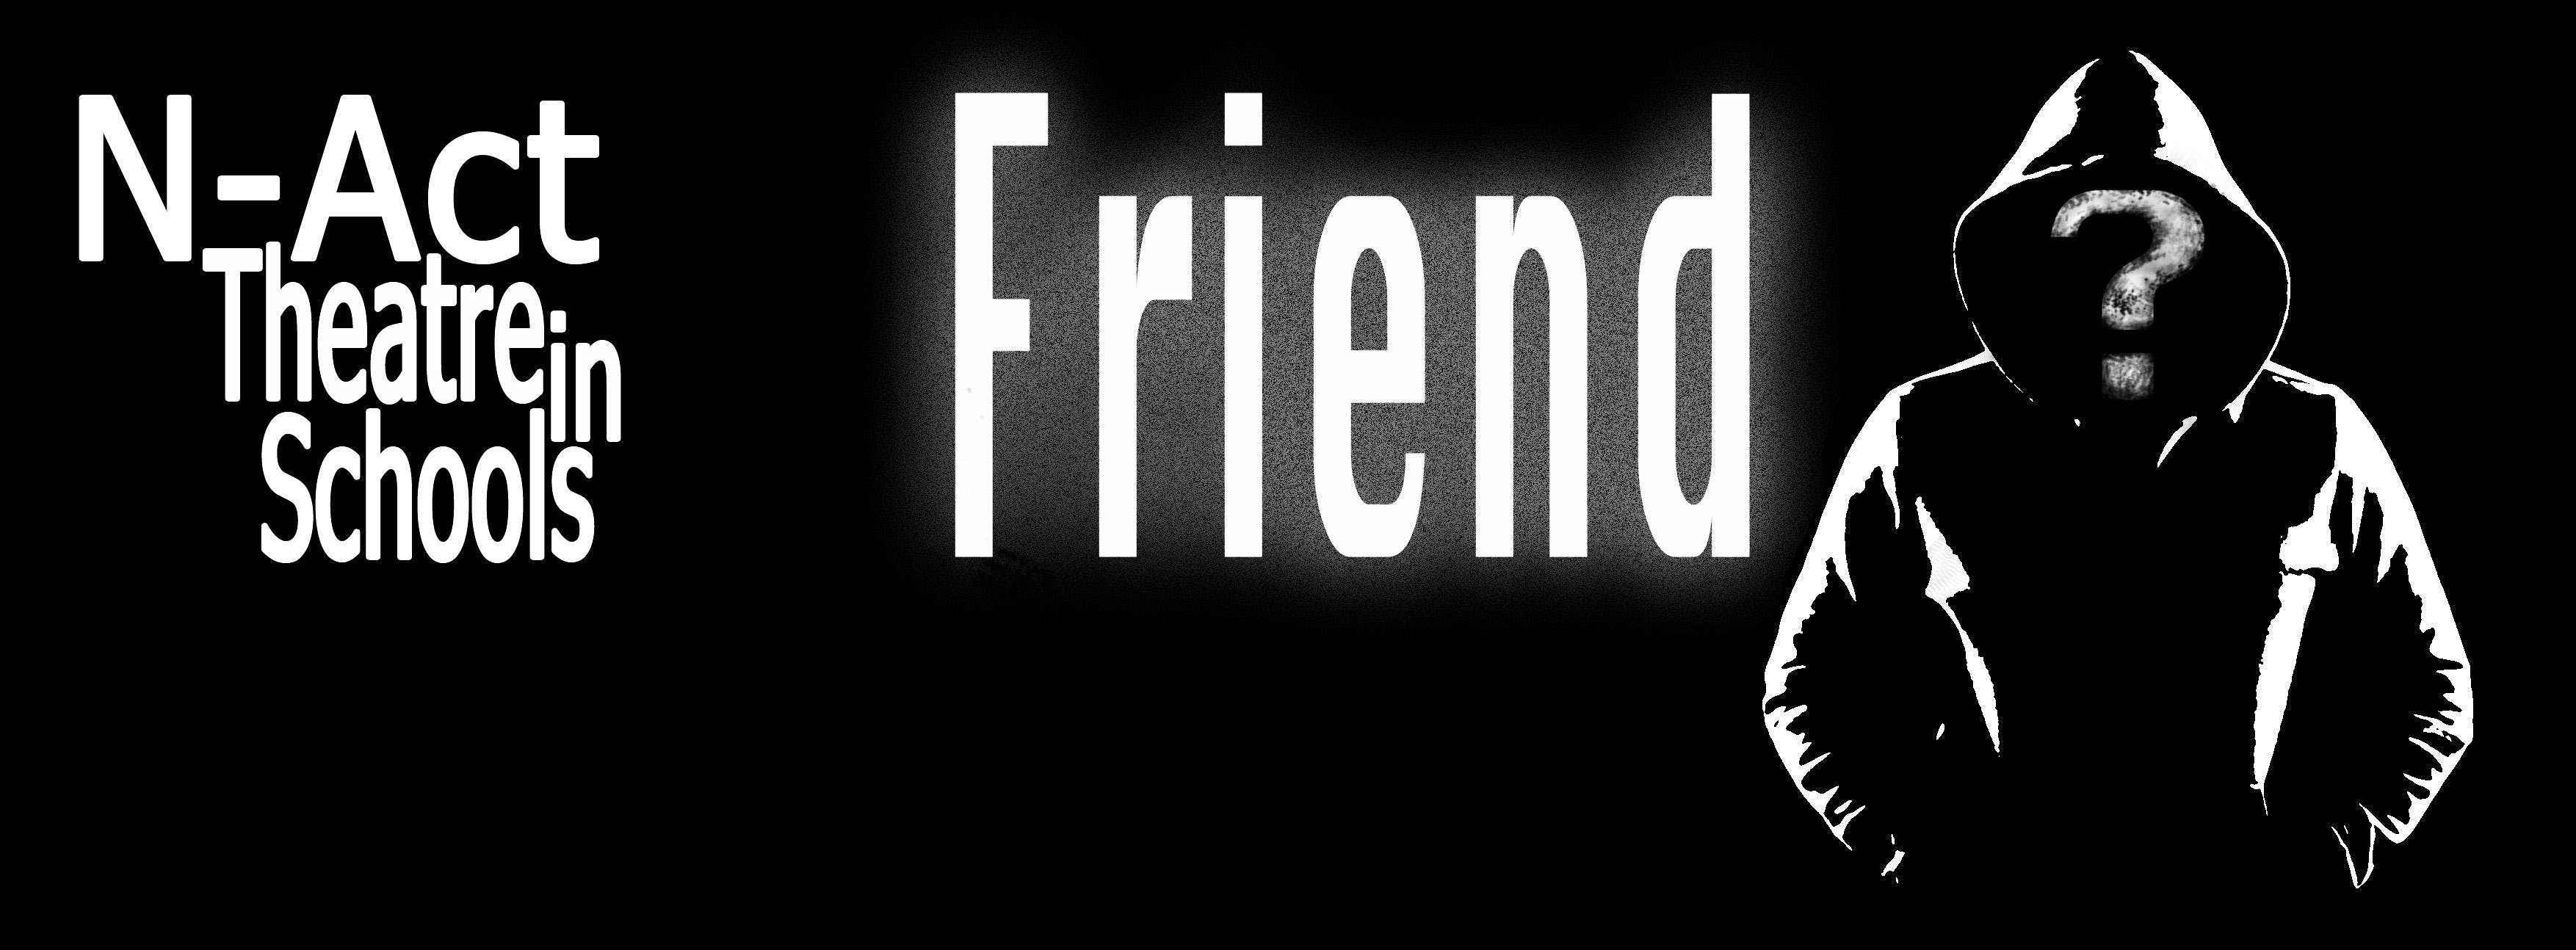 N-Act Theatre Companys Showcase performance of Friend